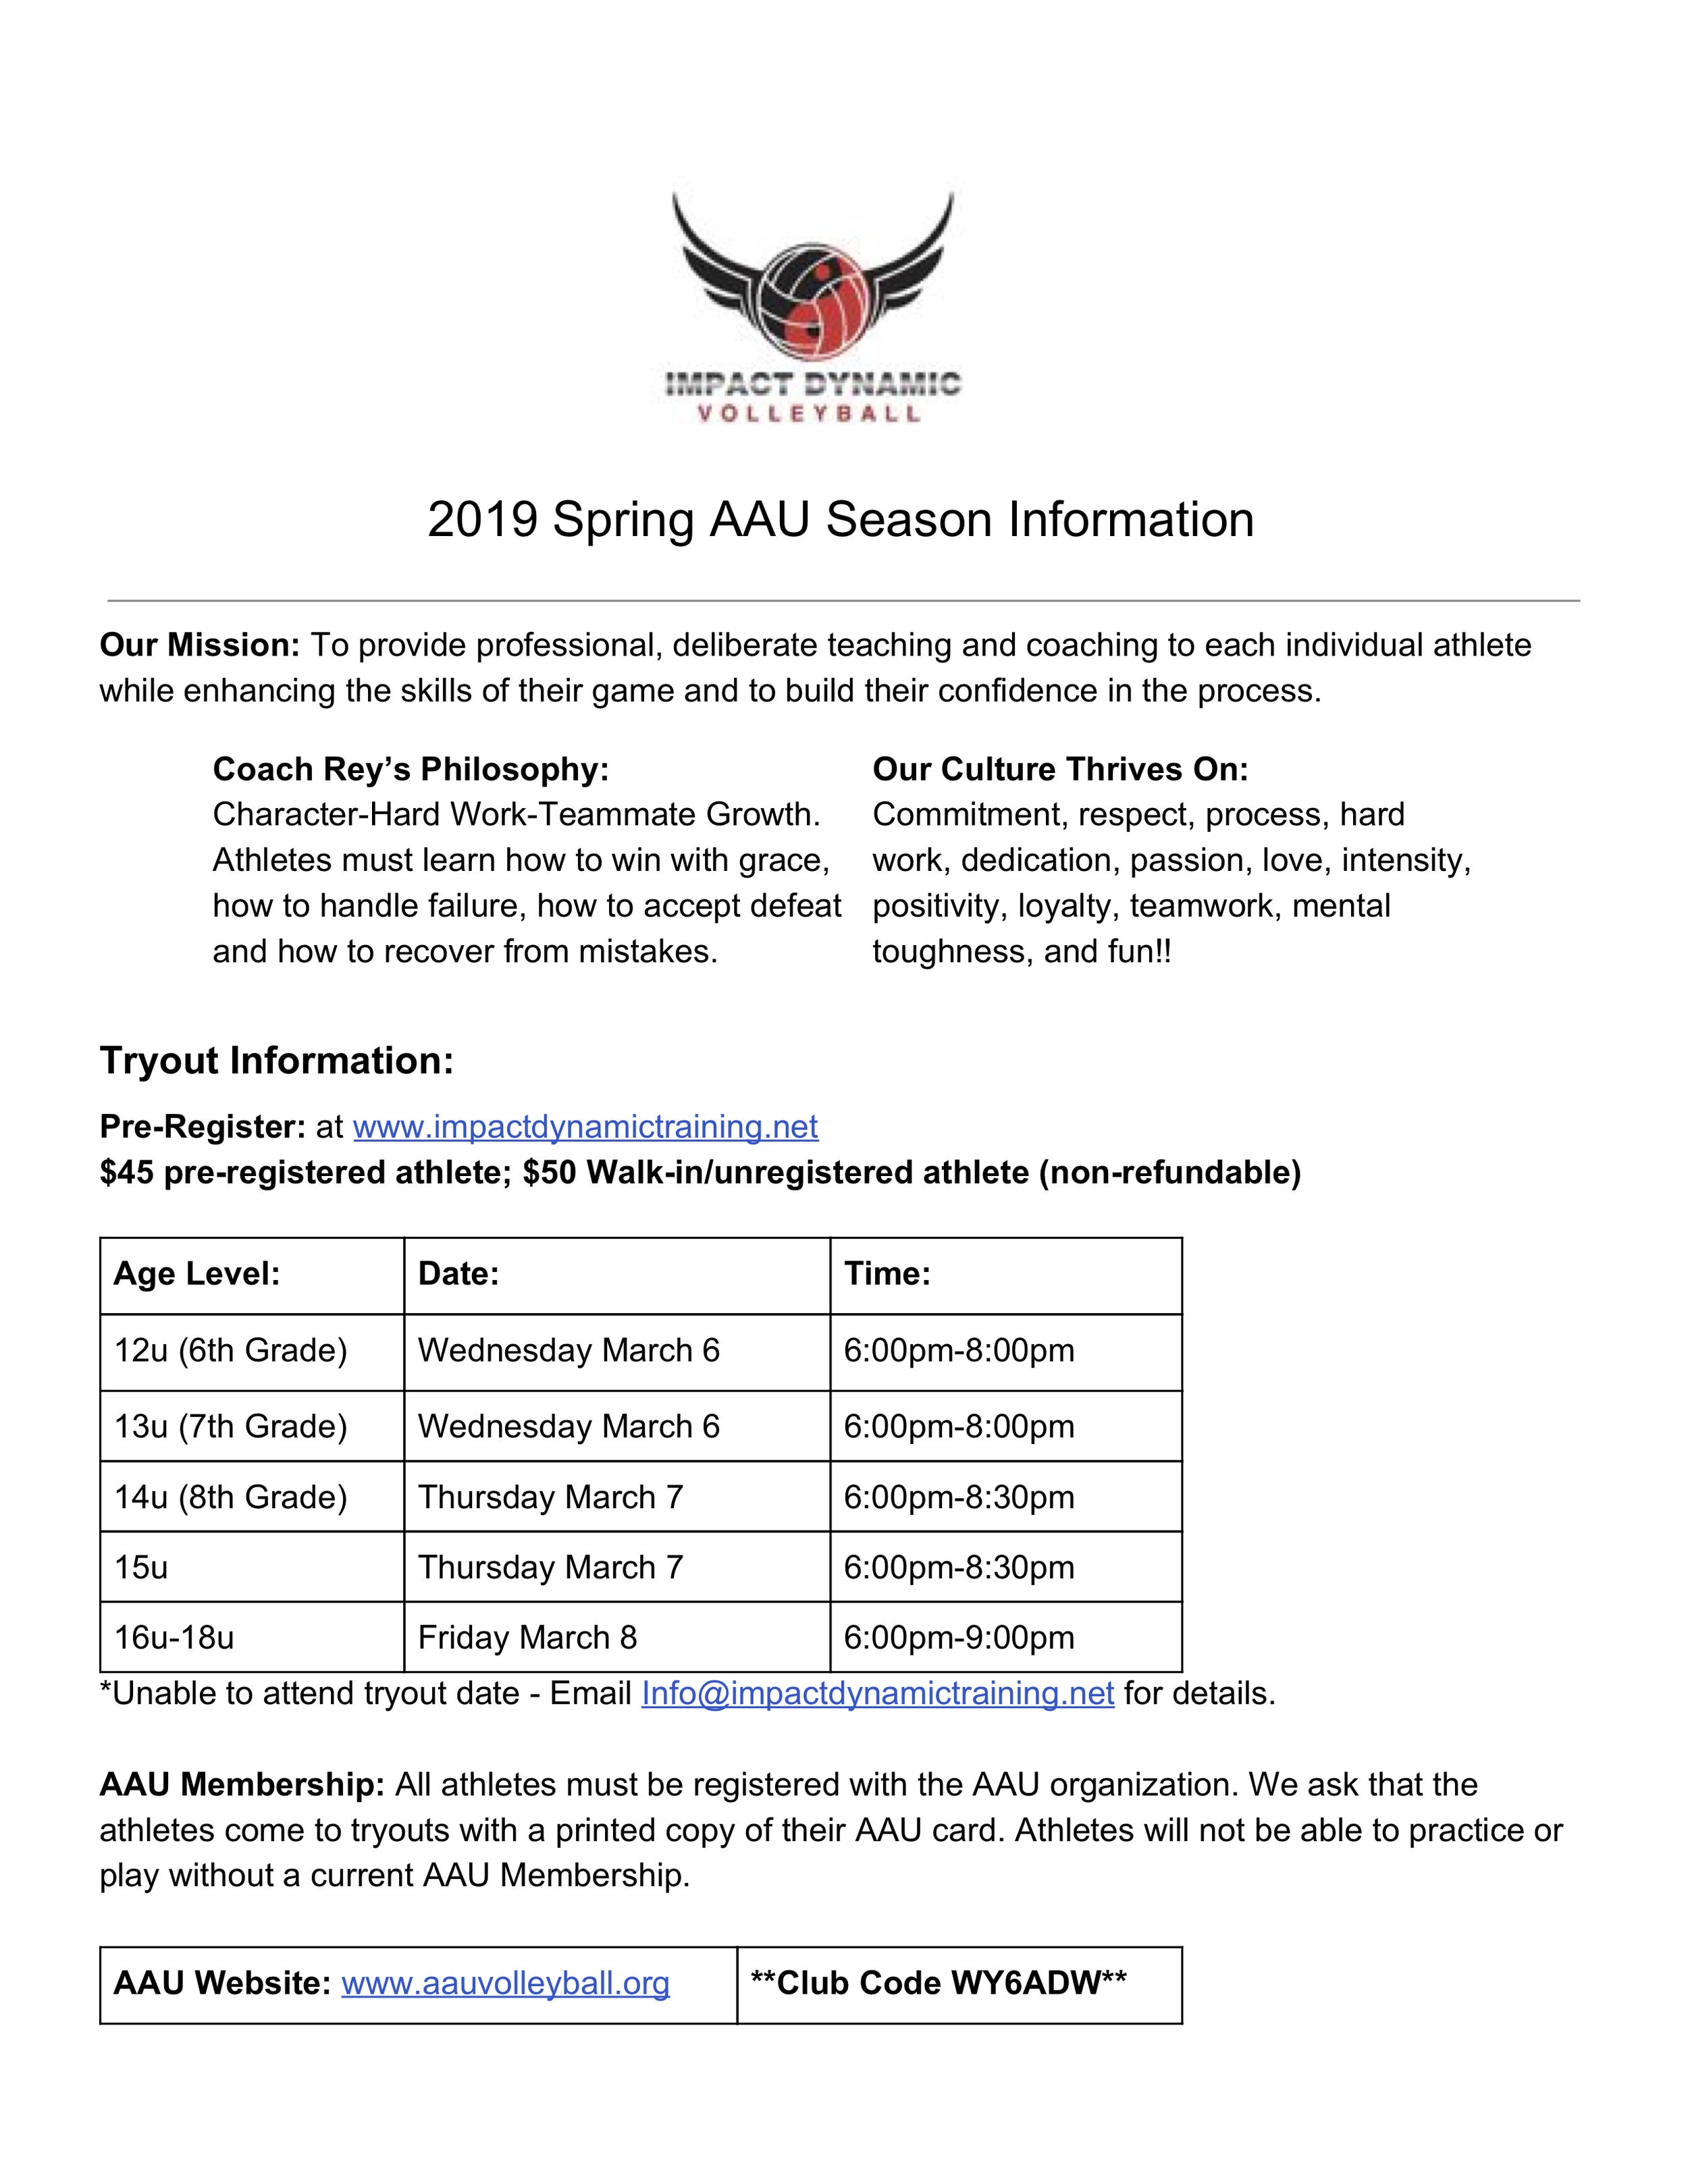 Spring Season Parent Letter.jpg